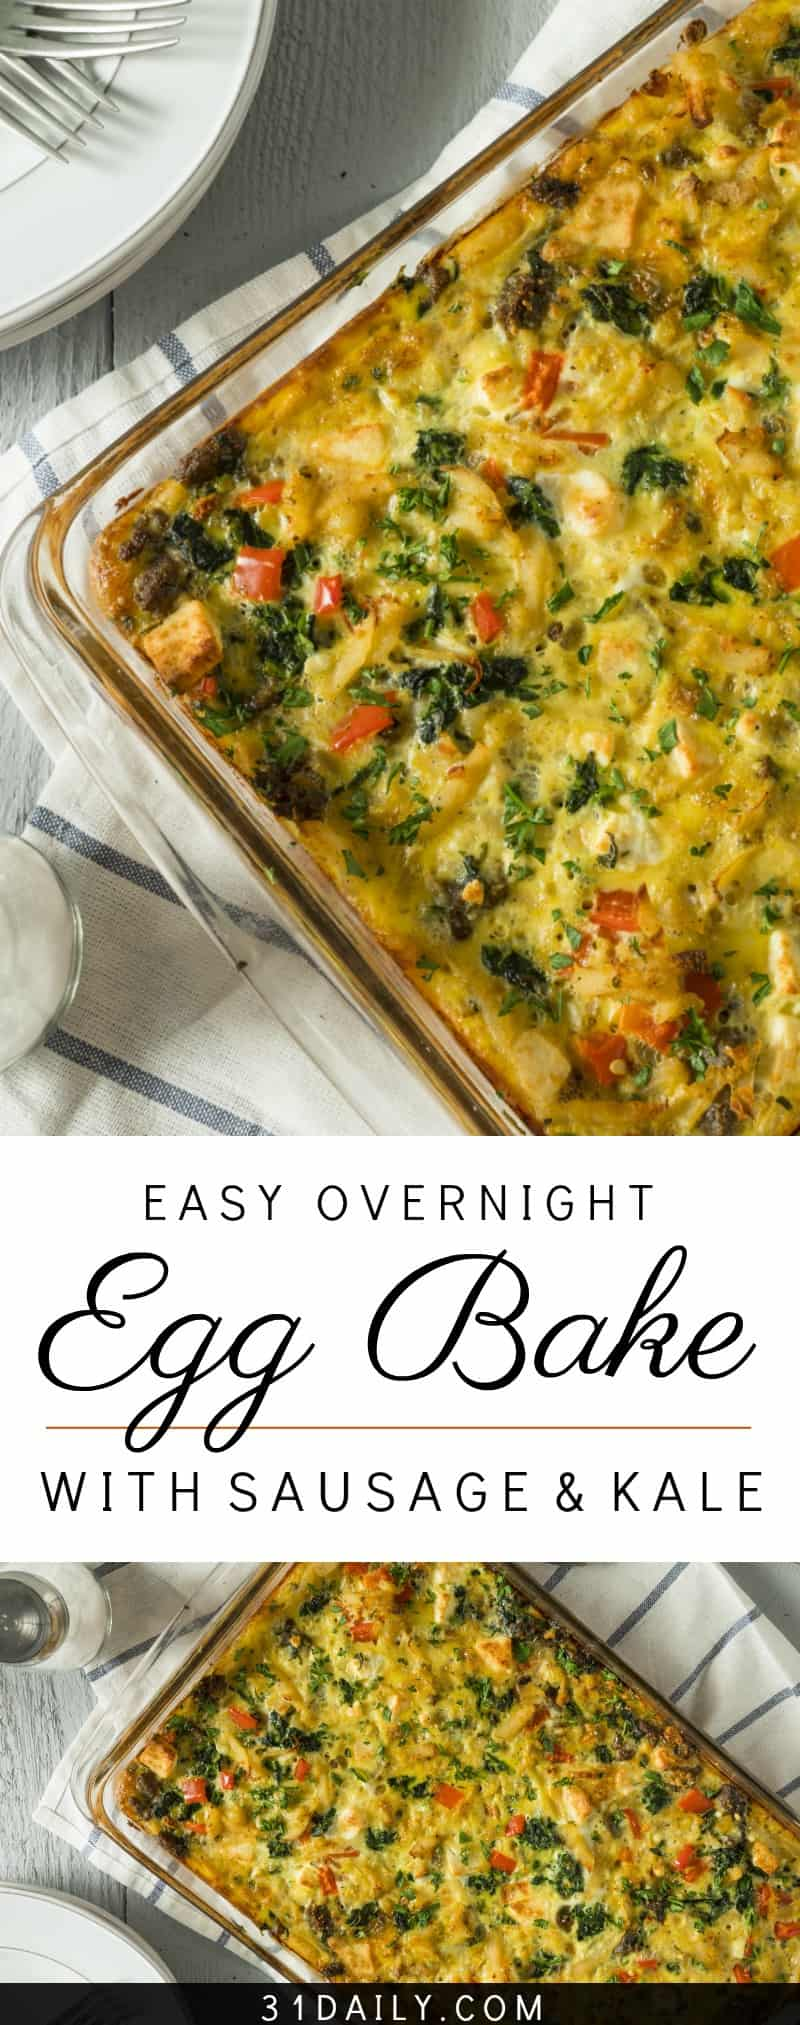 Easy Overnight Egg Bake with Sausage and Kale | 31Daily.com